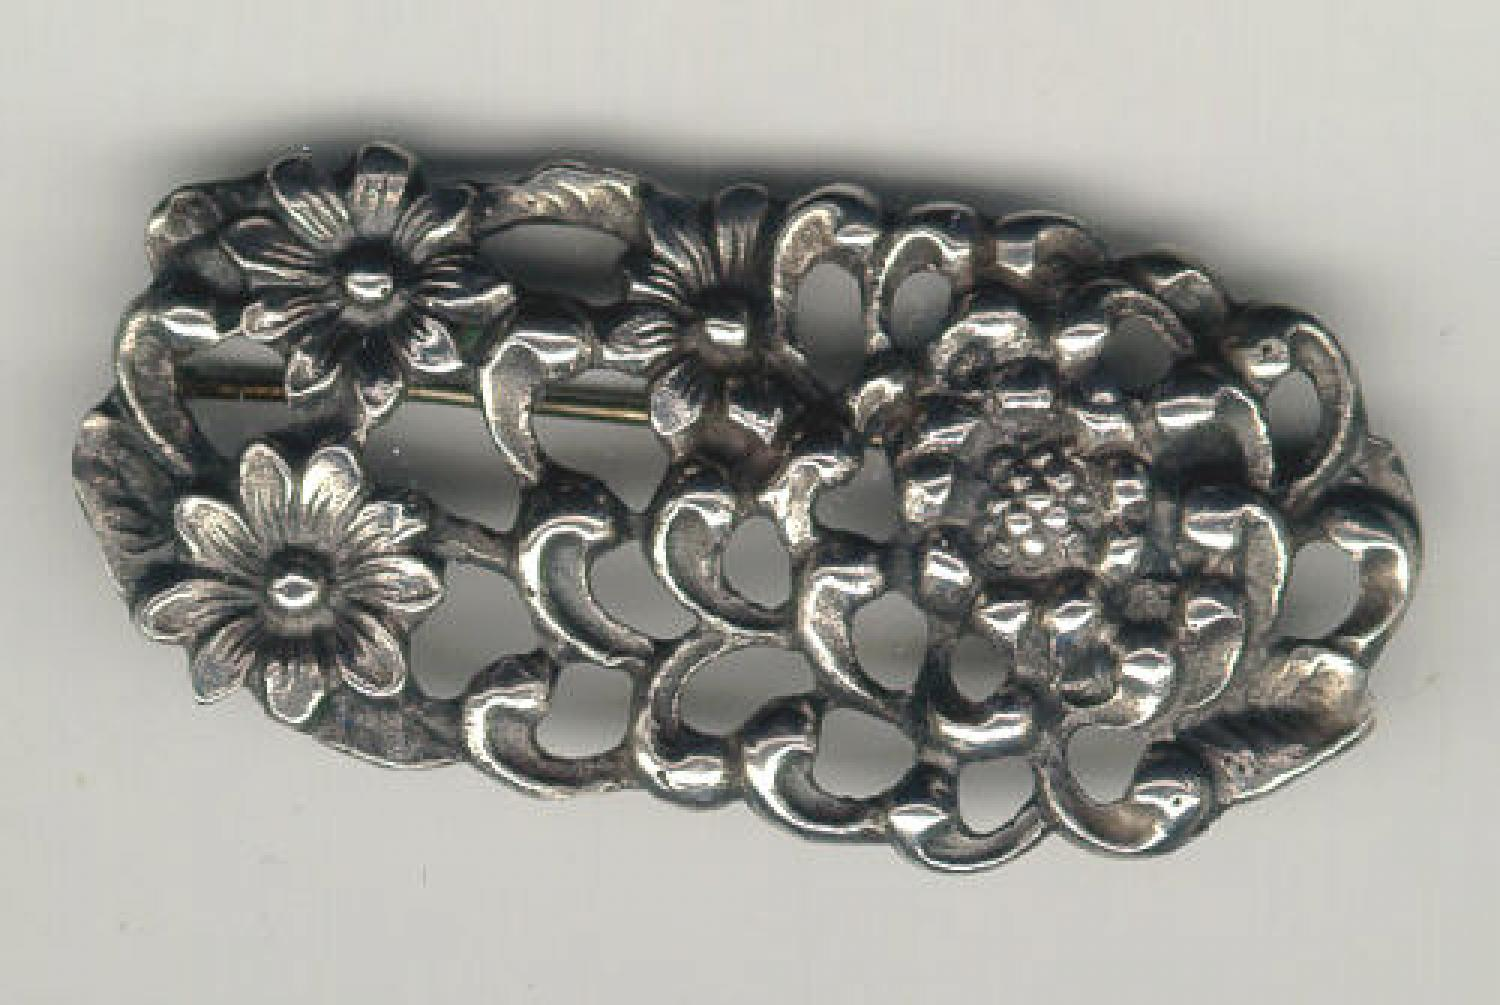 Peruzzi floral brooch in sterling silver c1900